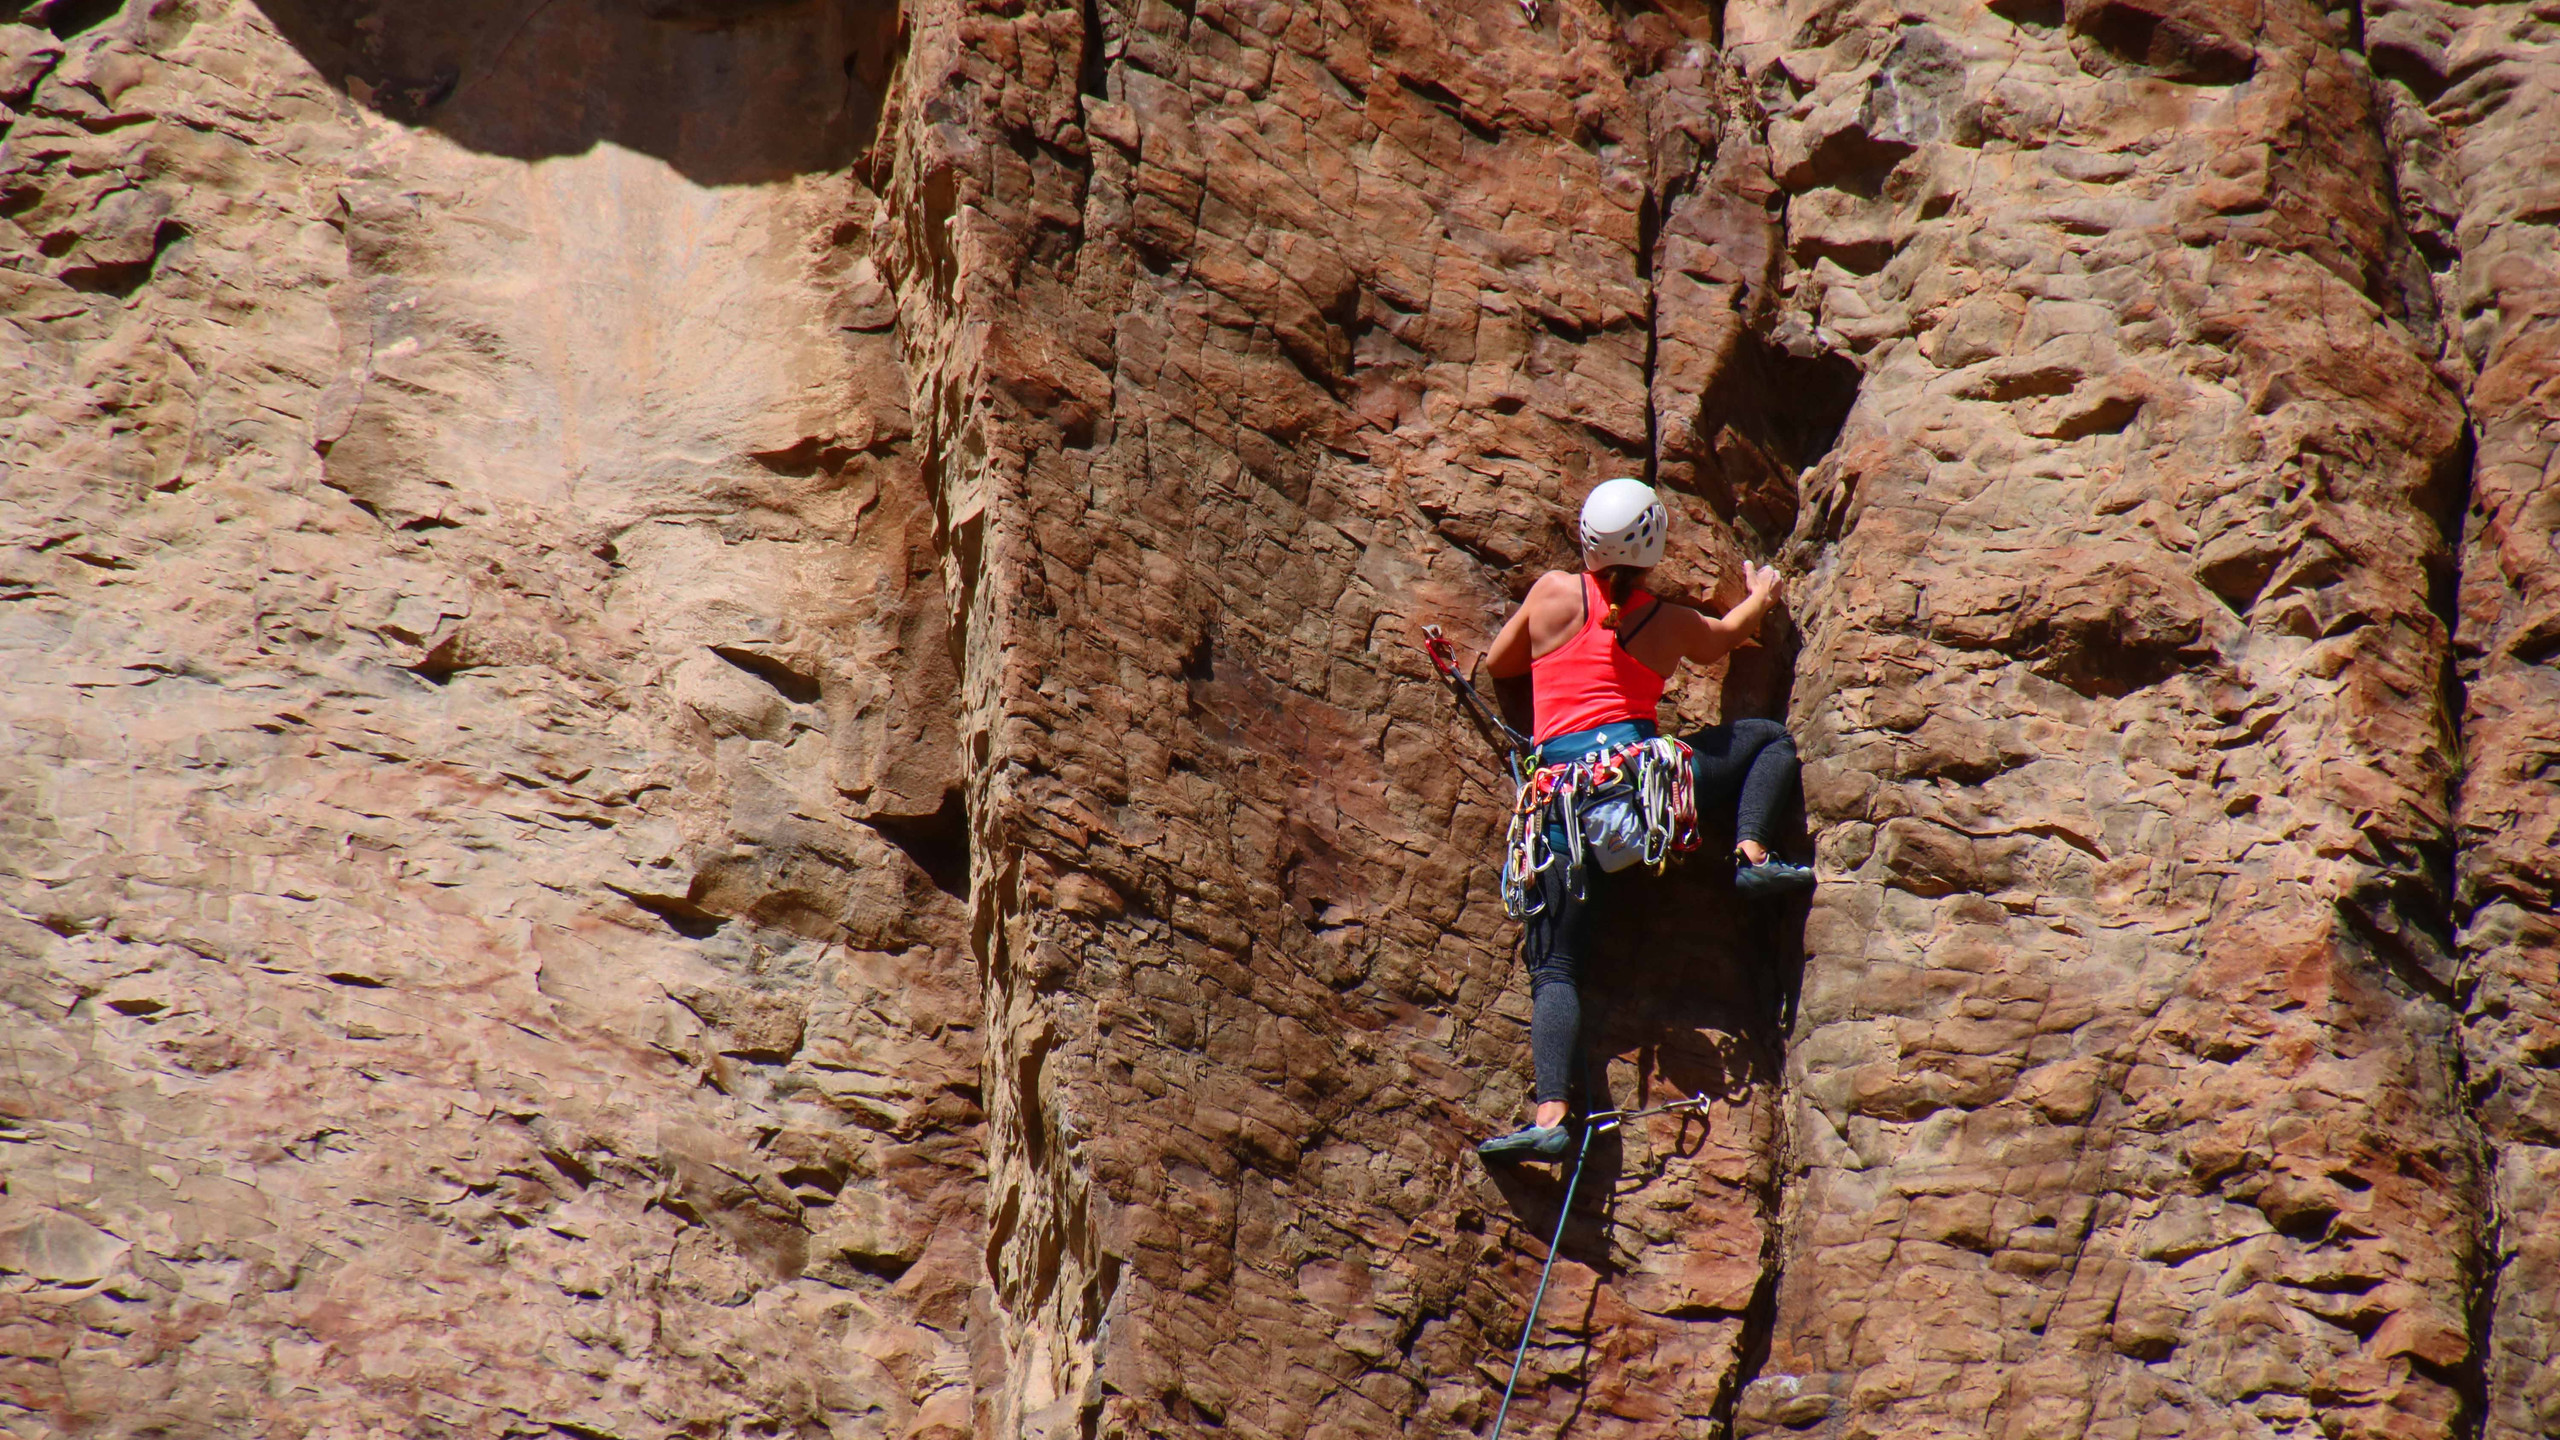 Woman in red shirt and white helmet rock climbing in Diablo Canyon in Santa Fe, New Mexico